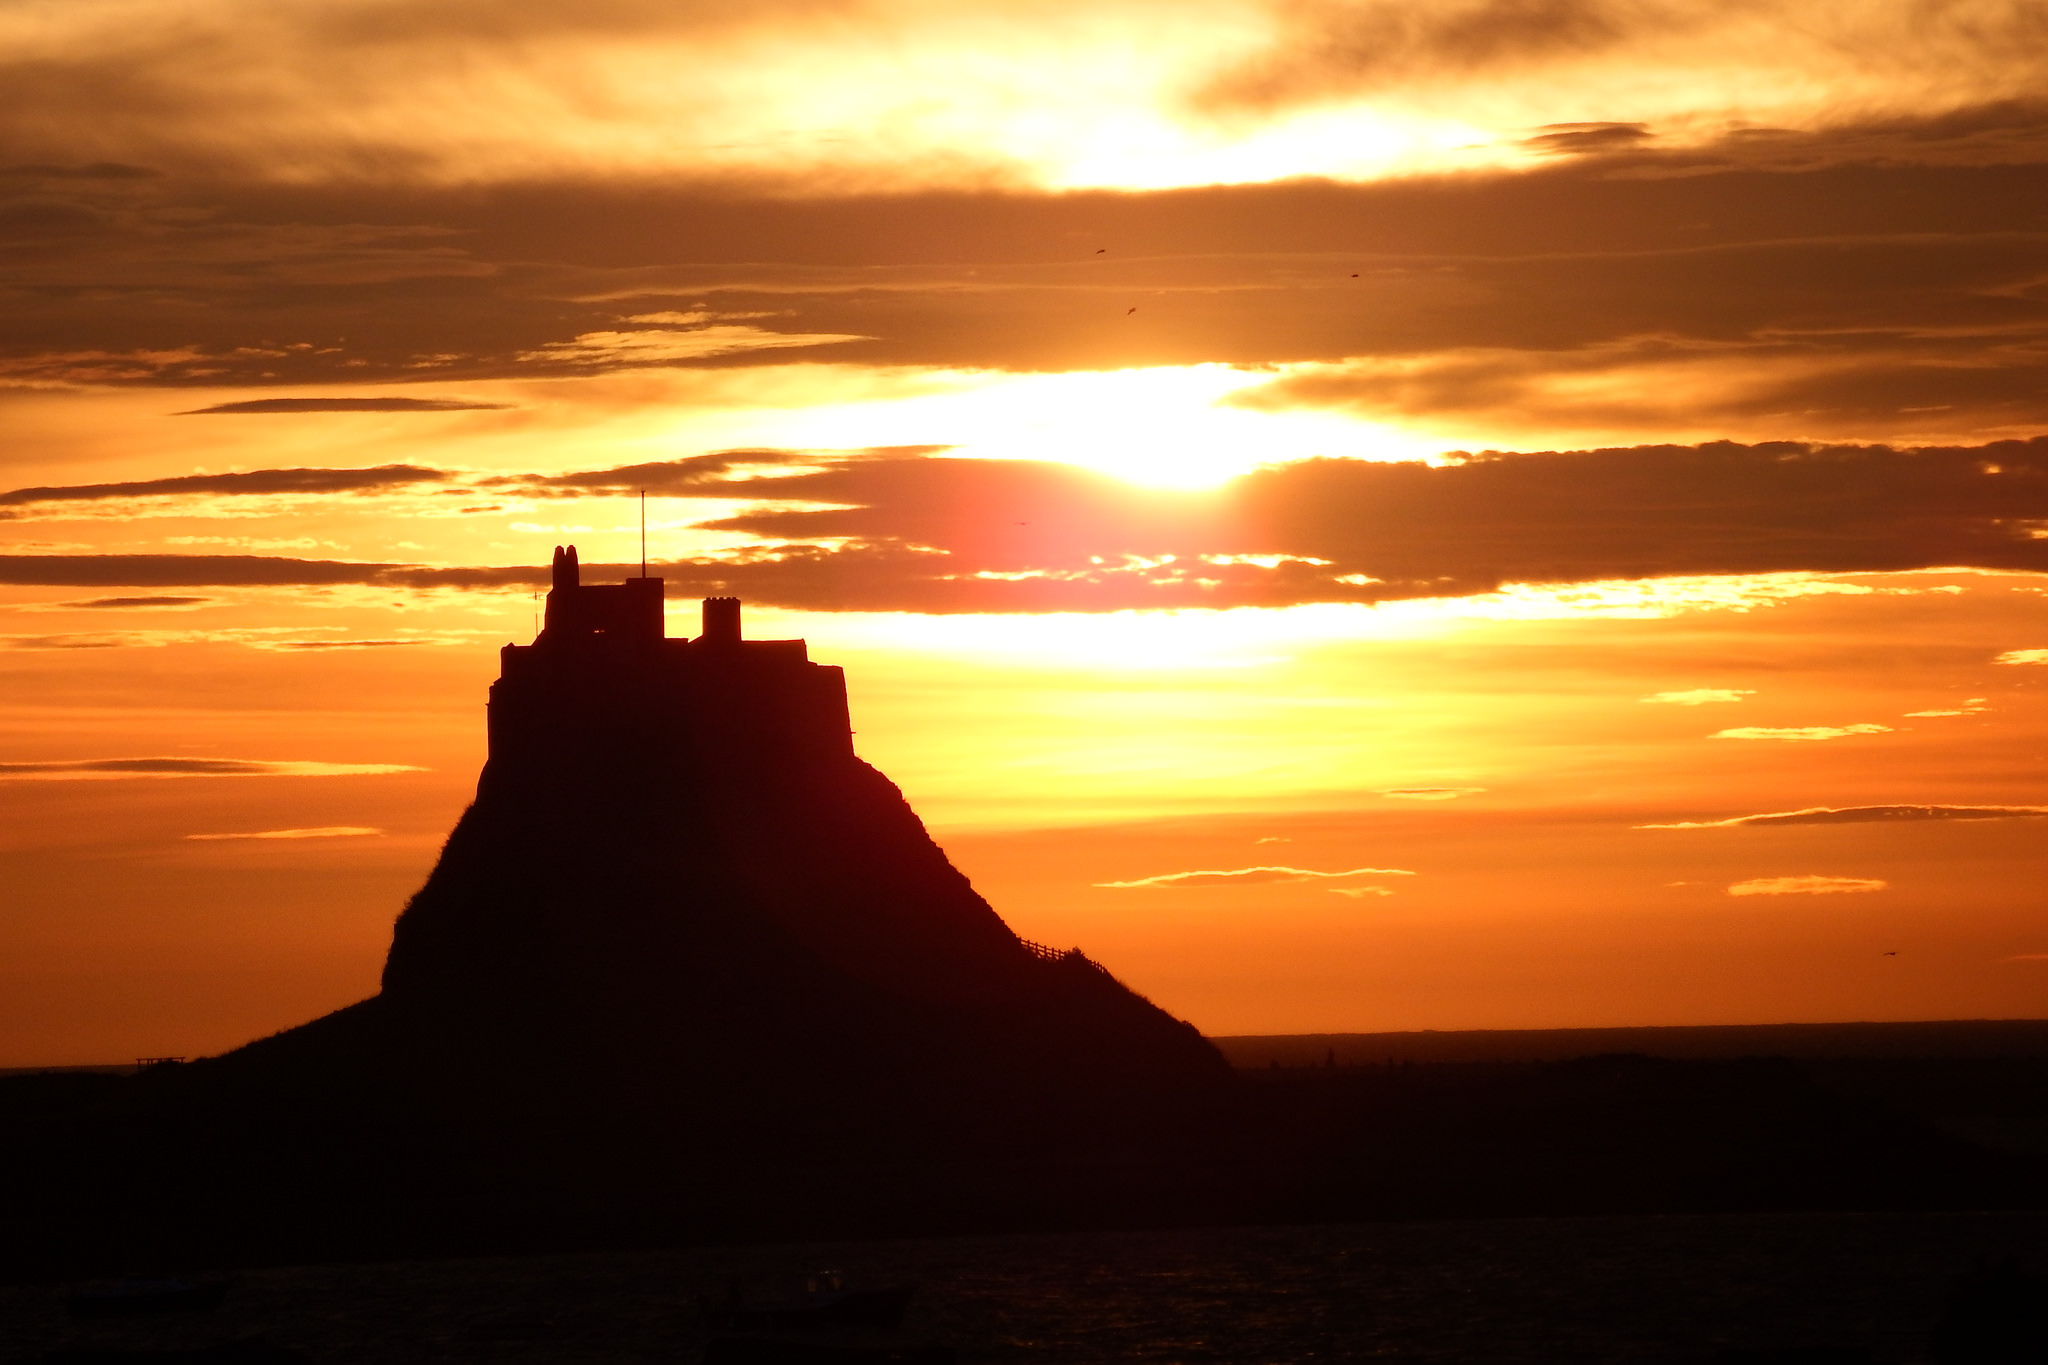 Lindisfarne at sunset. Photograph by Richard Twinch